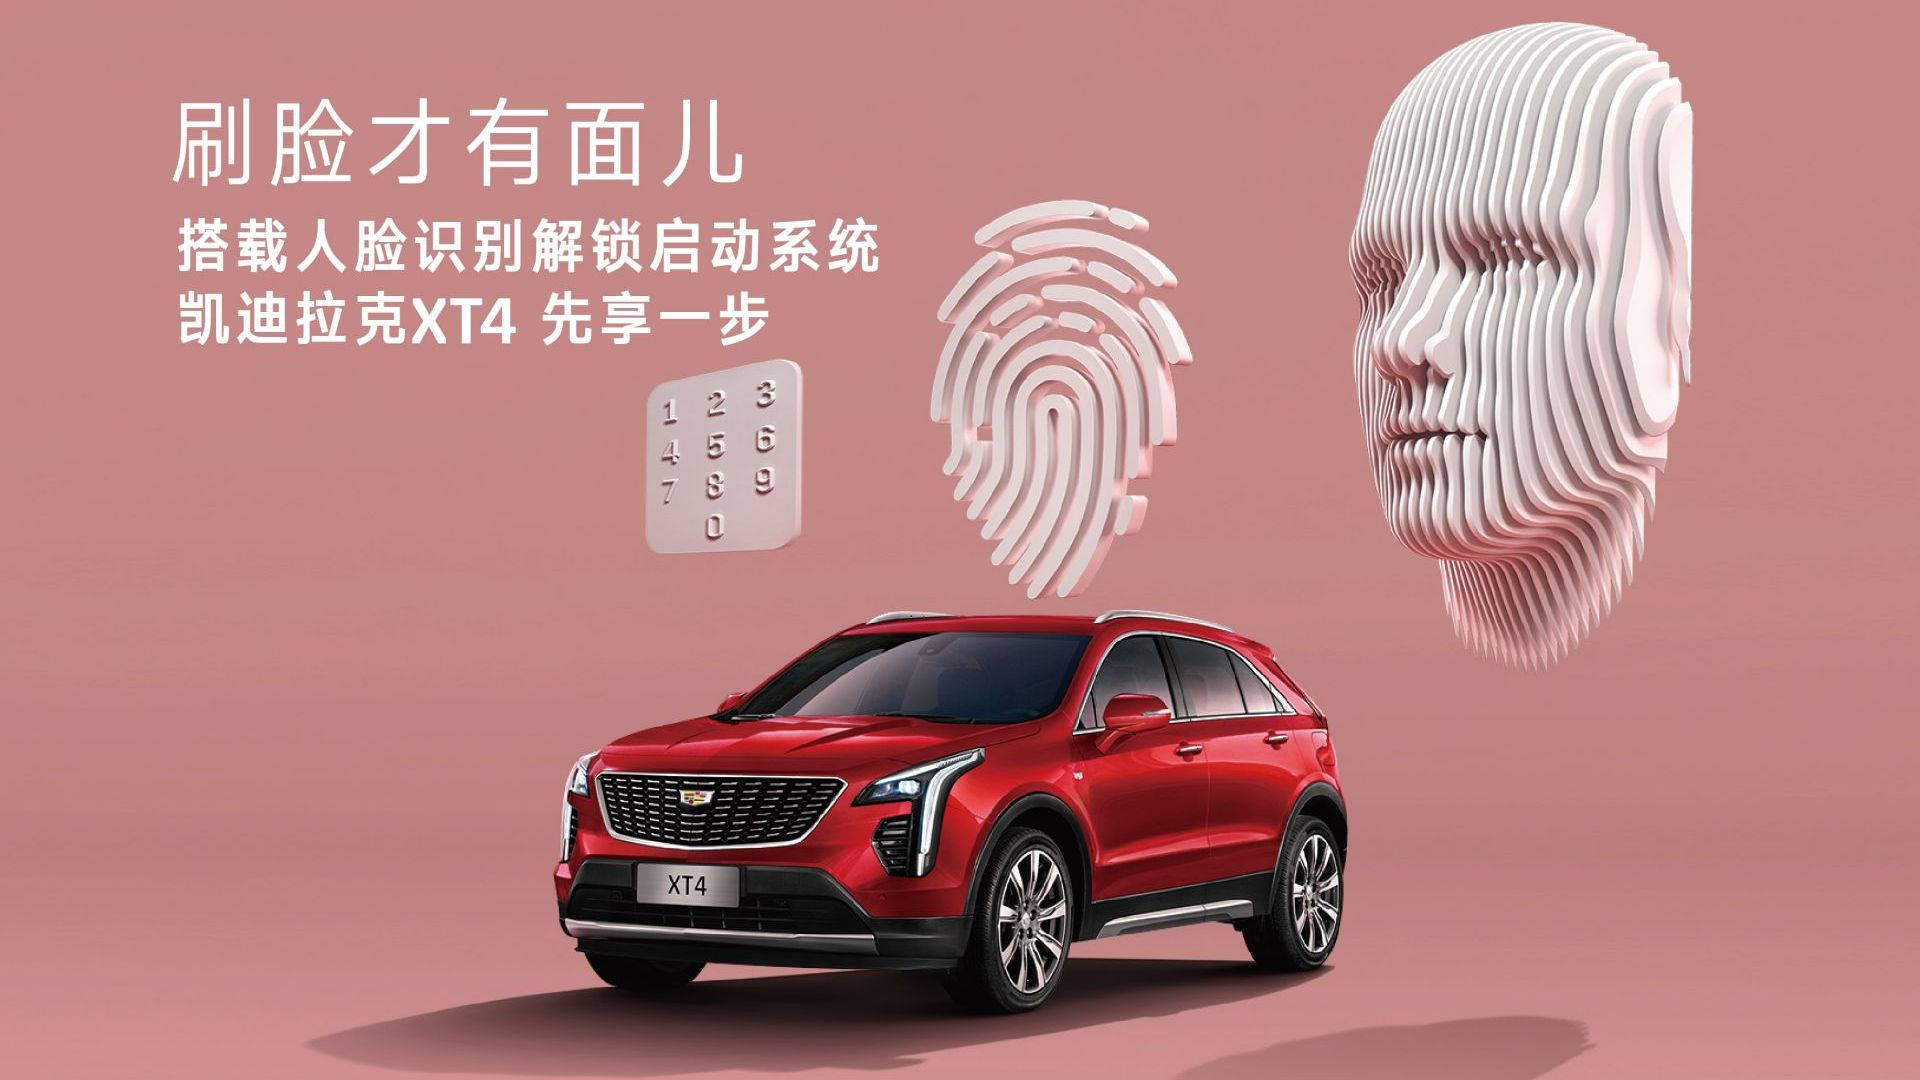 The China-spec Cadillac XT4 is due a mid-generational refresh soon, and the new feature called Face ID is touted among its main highlights.